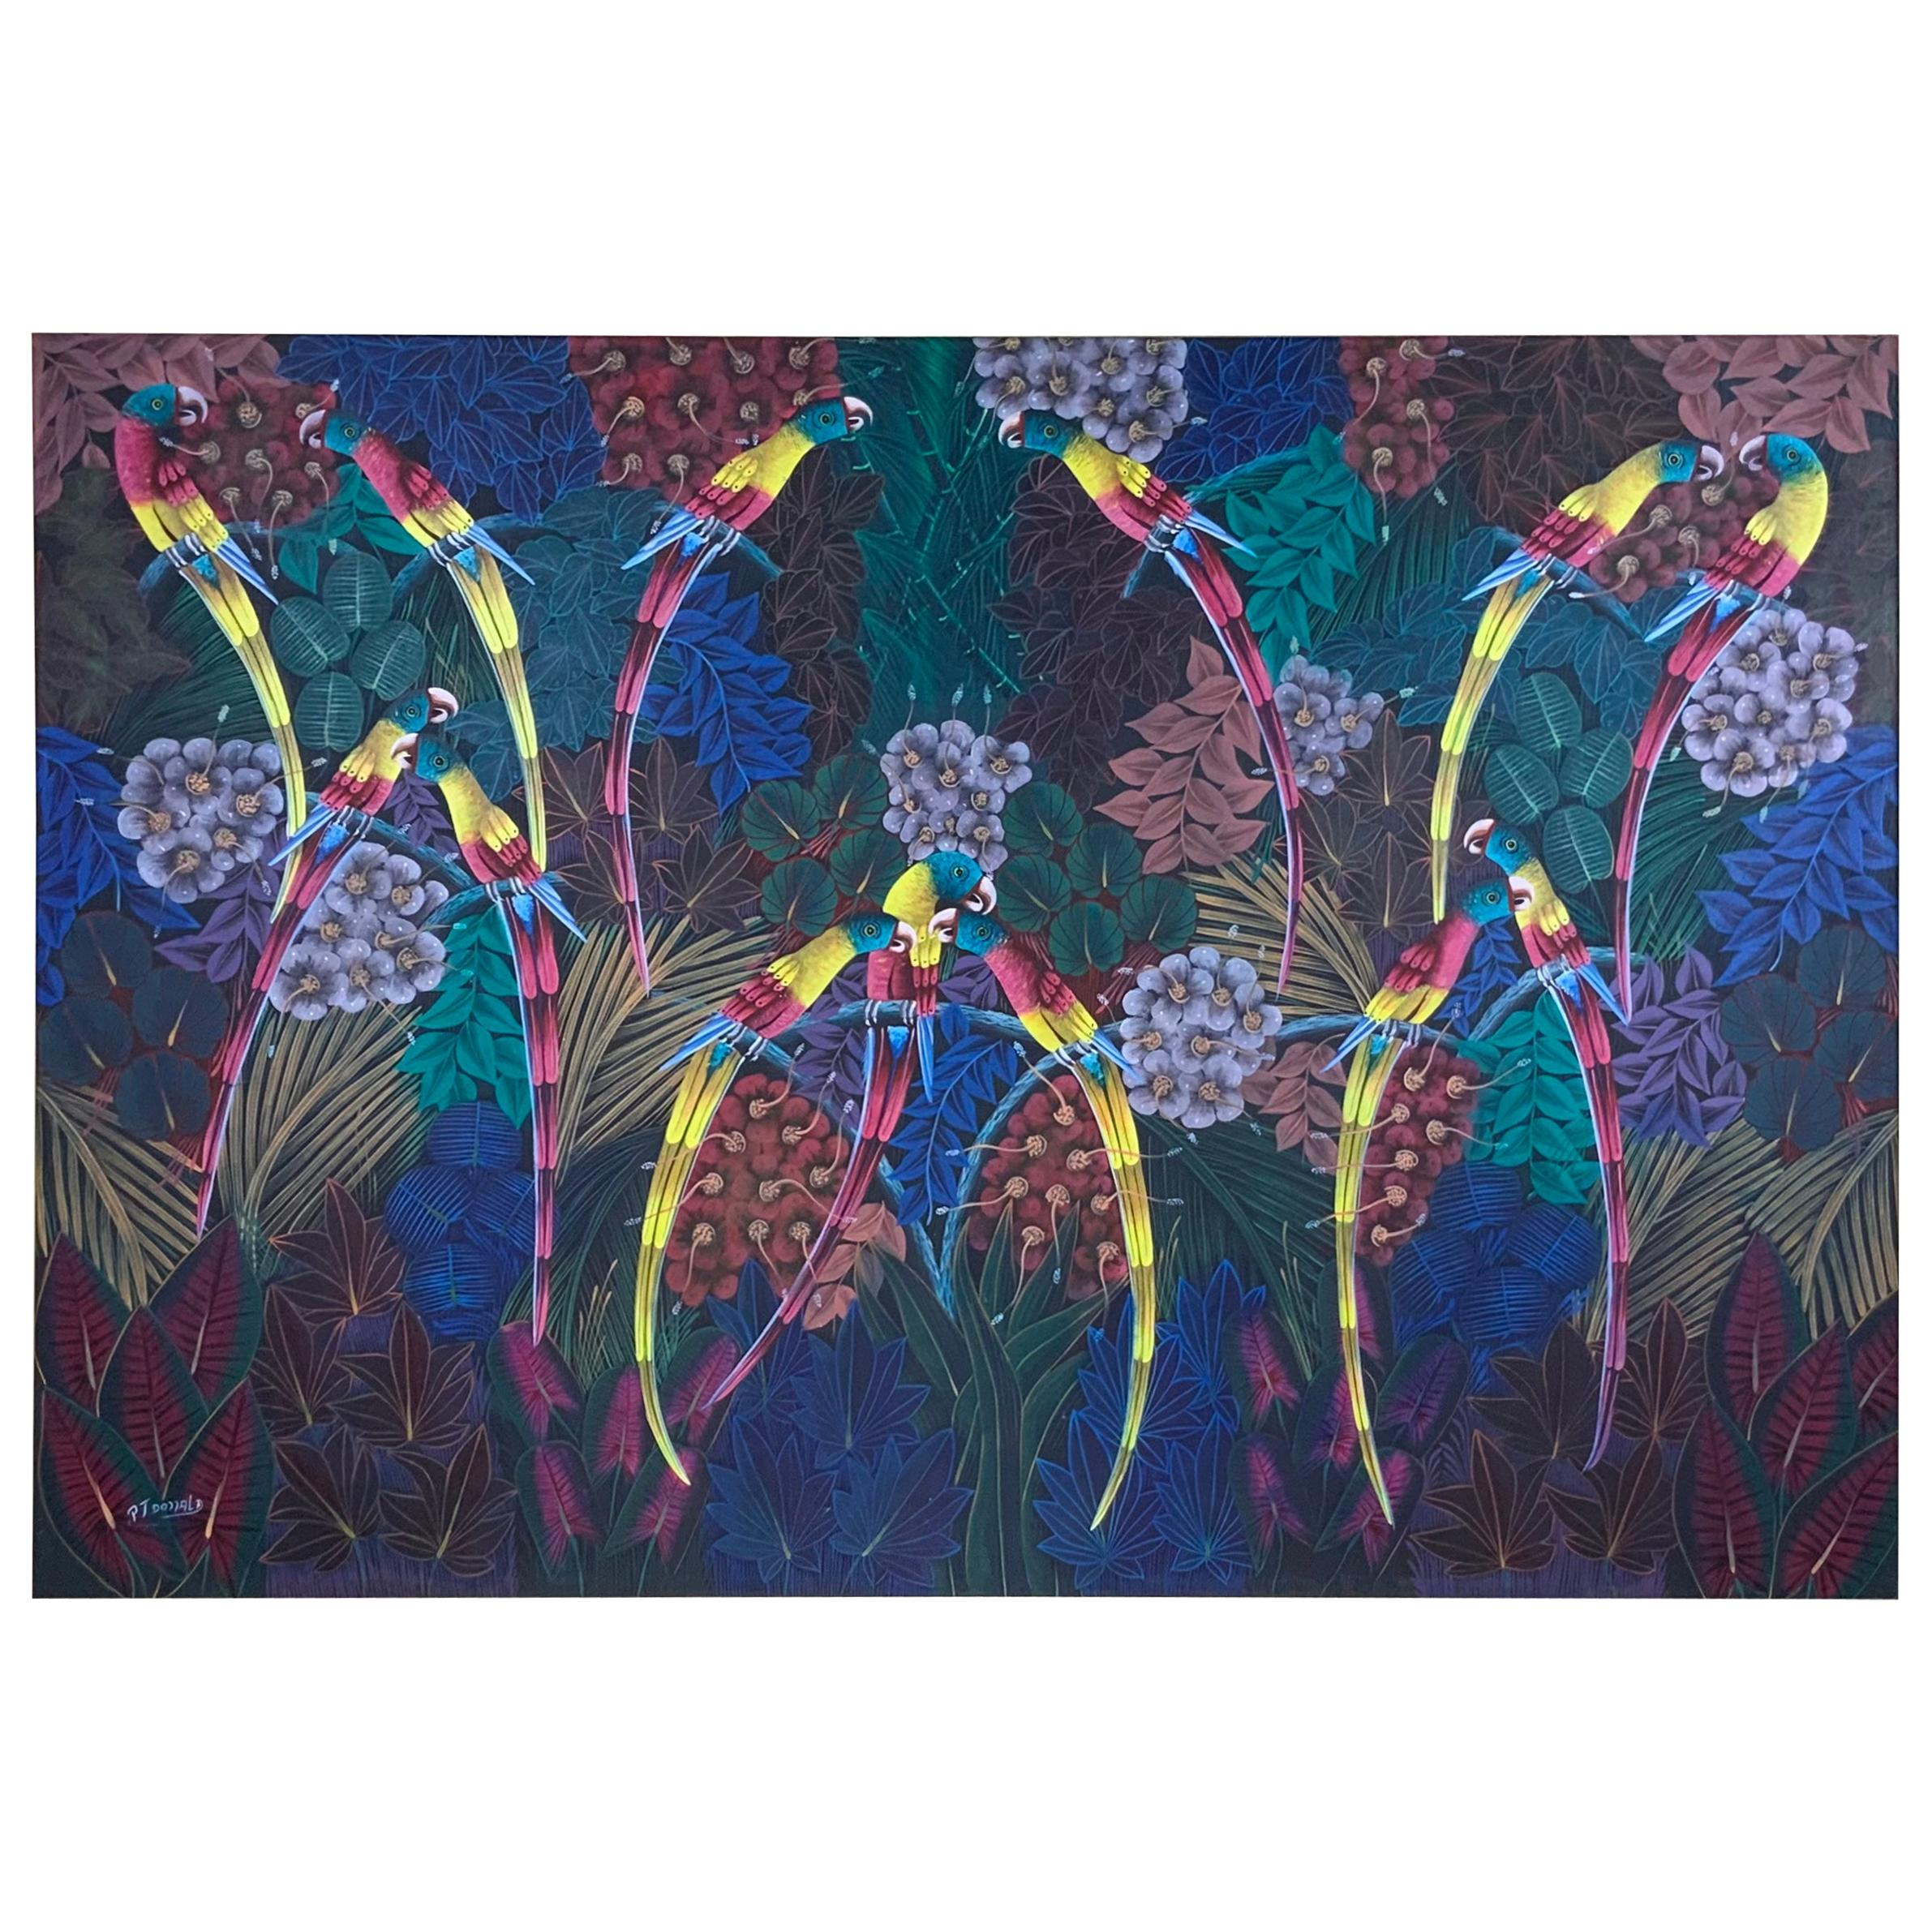 Large Parrots in the Jungle, Haitian Acrylic Painting on Canvas